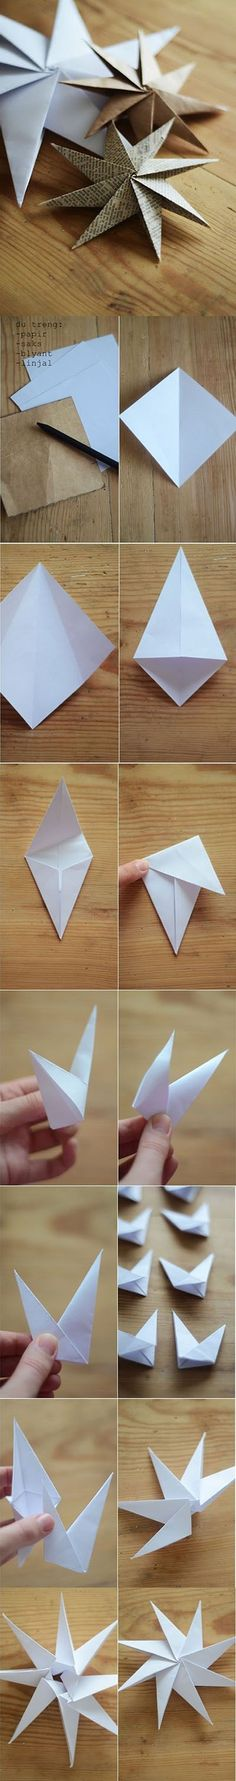 Easy And Beautiful Paper Craft